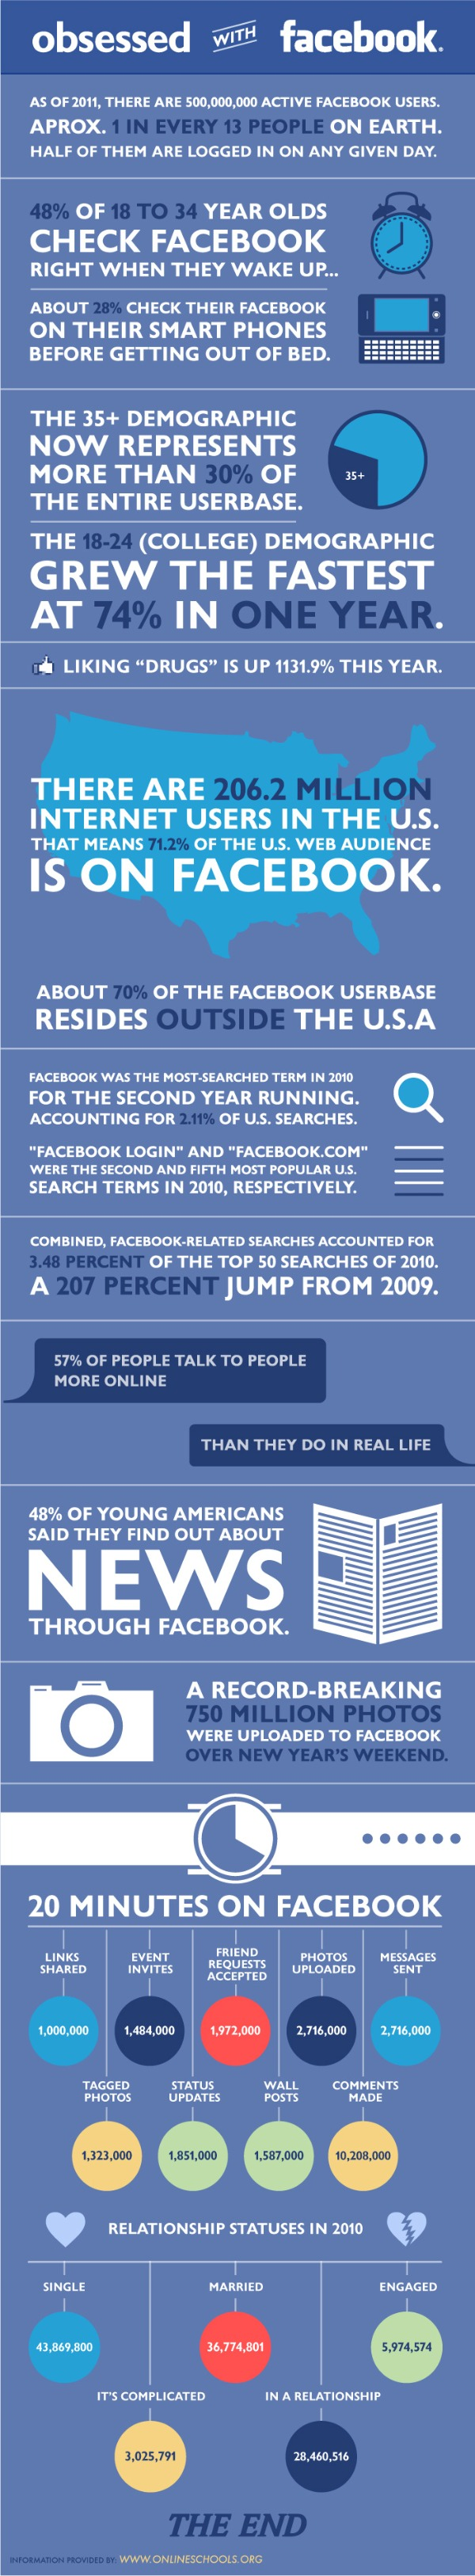 OnlineSchools.org - Obsessed With Facebook